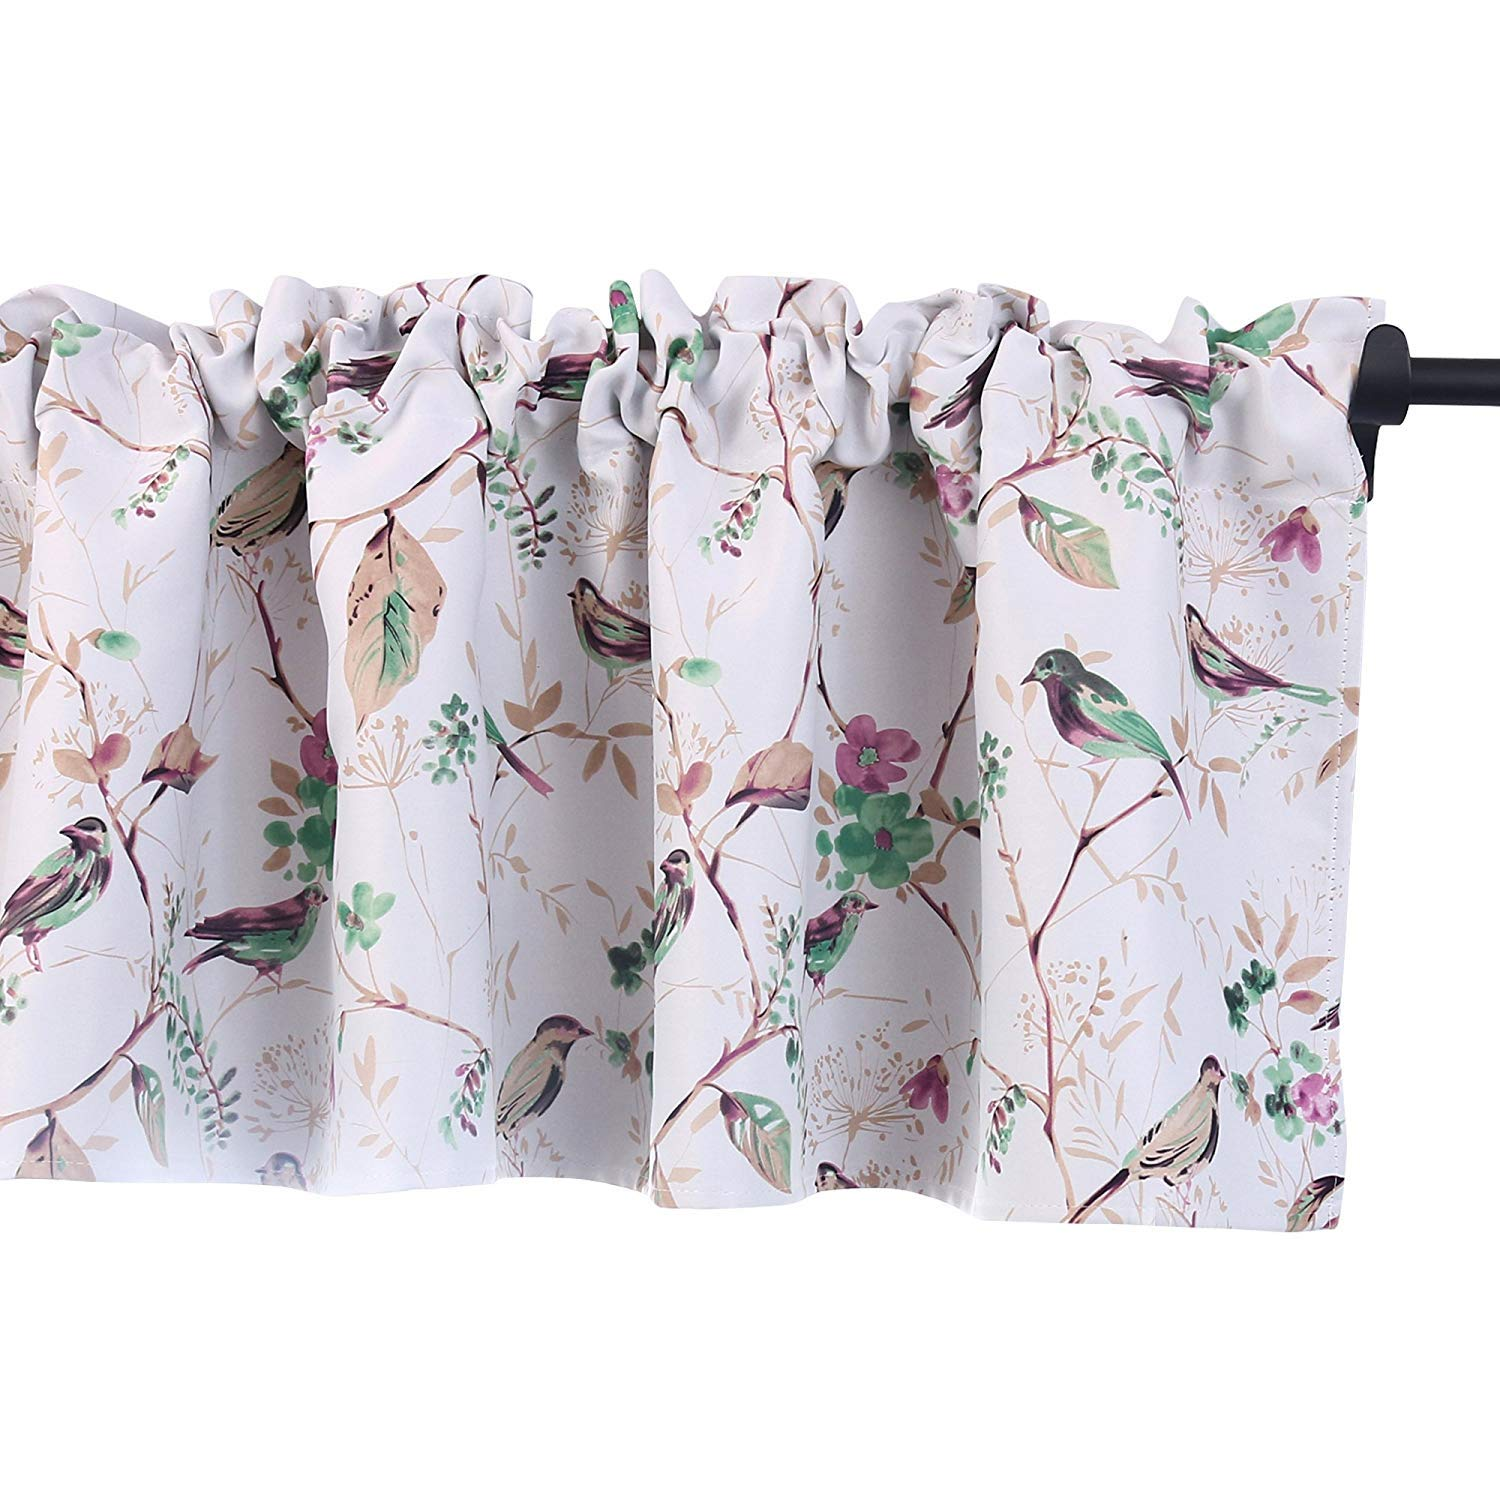 HOLKING Bird Printed Valances for Windows Room Darkening Kitchen Curtains Valances with Rod Pocket (52 by 18 inch,1 Panel,Yellow) HQ-A-HUANG